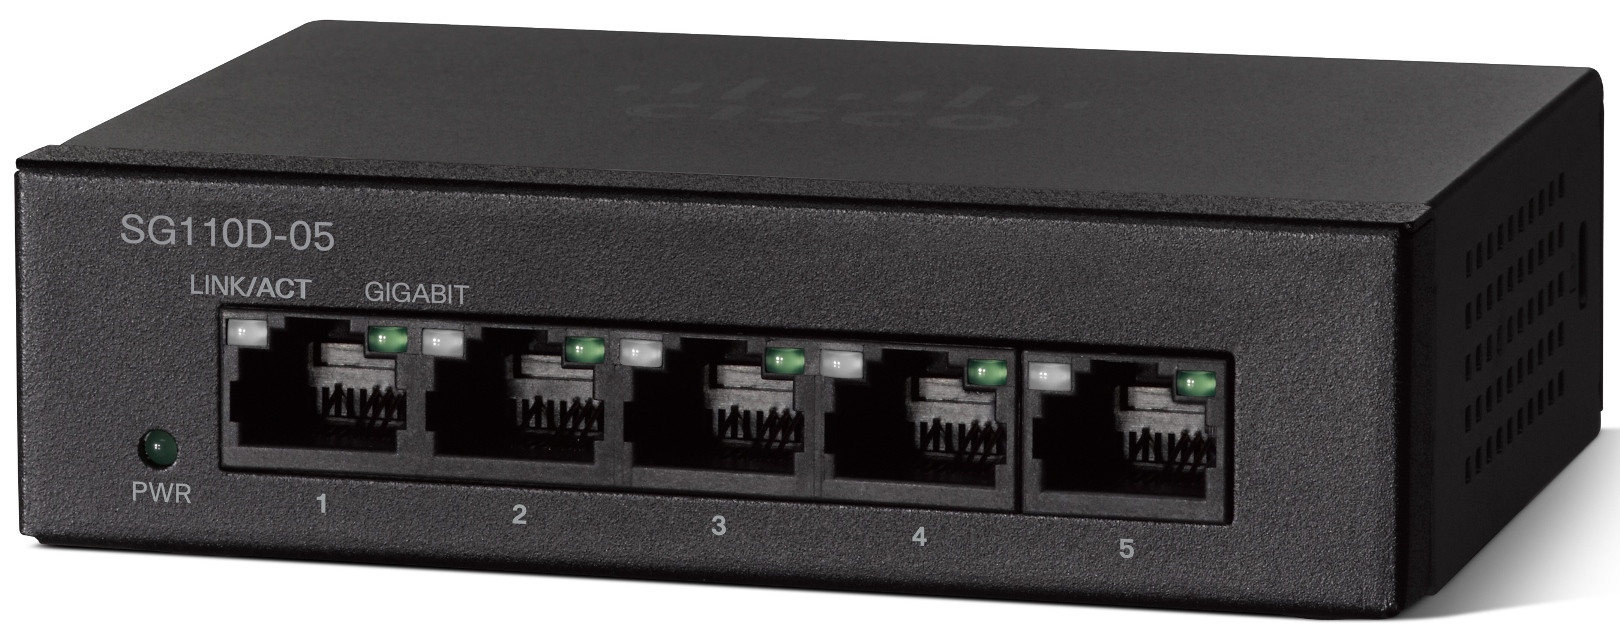 Cisco SG 110D-05, 5-port Gigabit switch